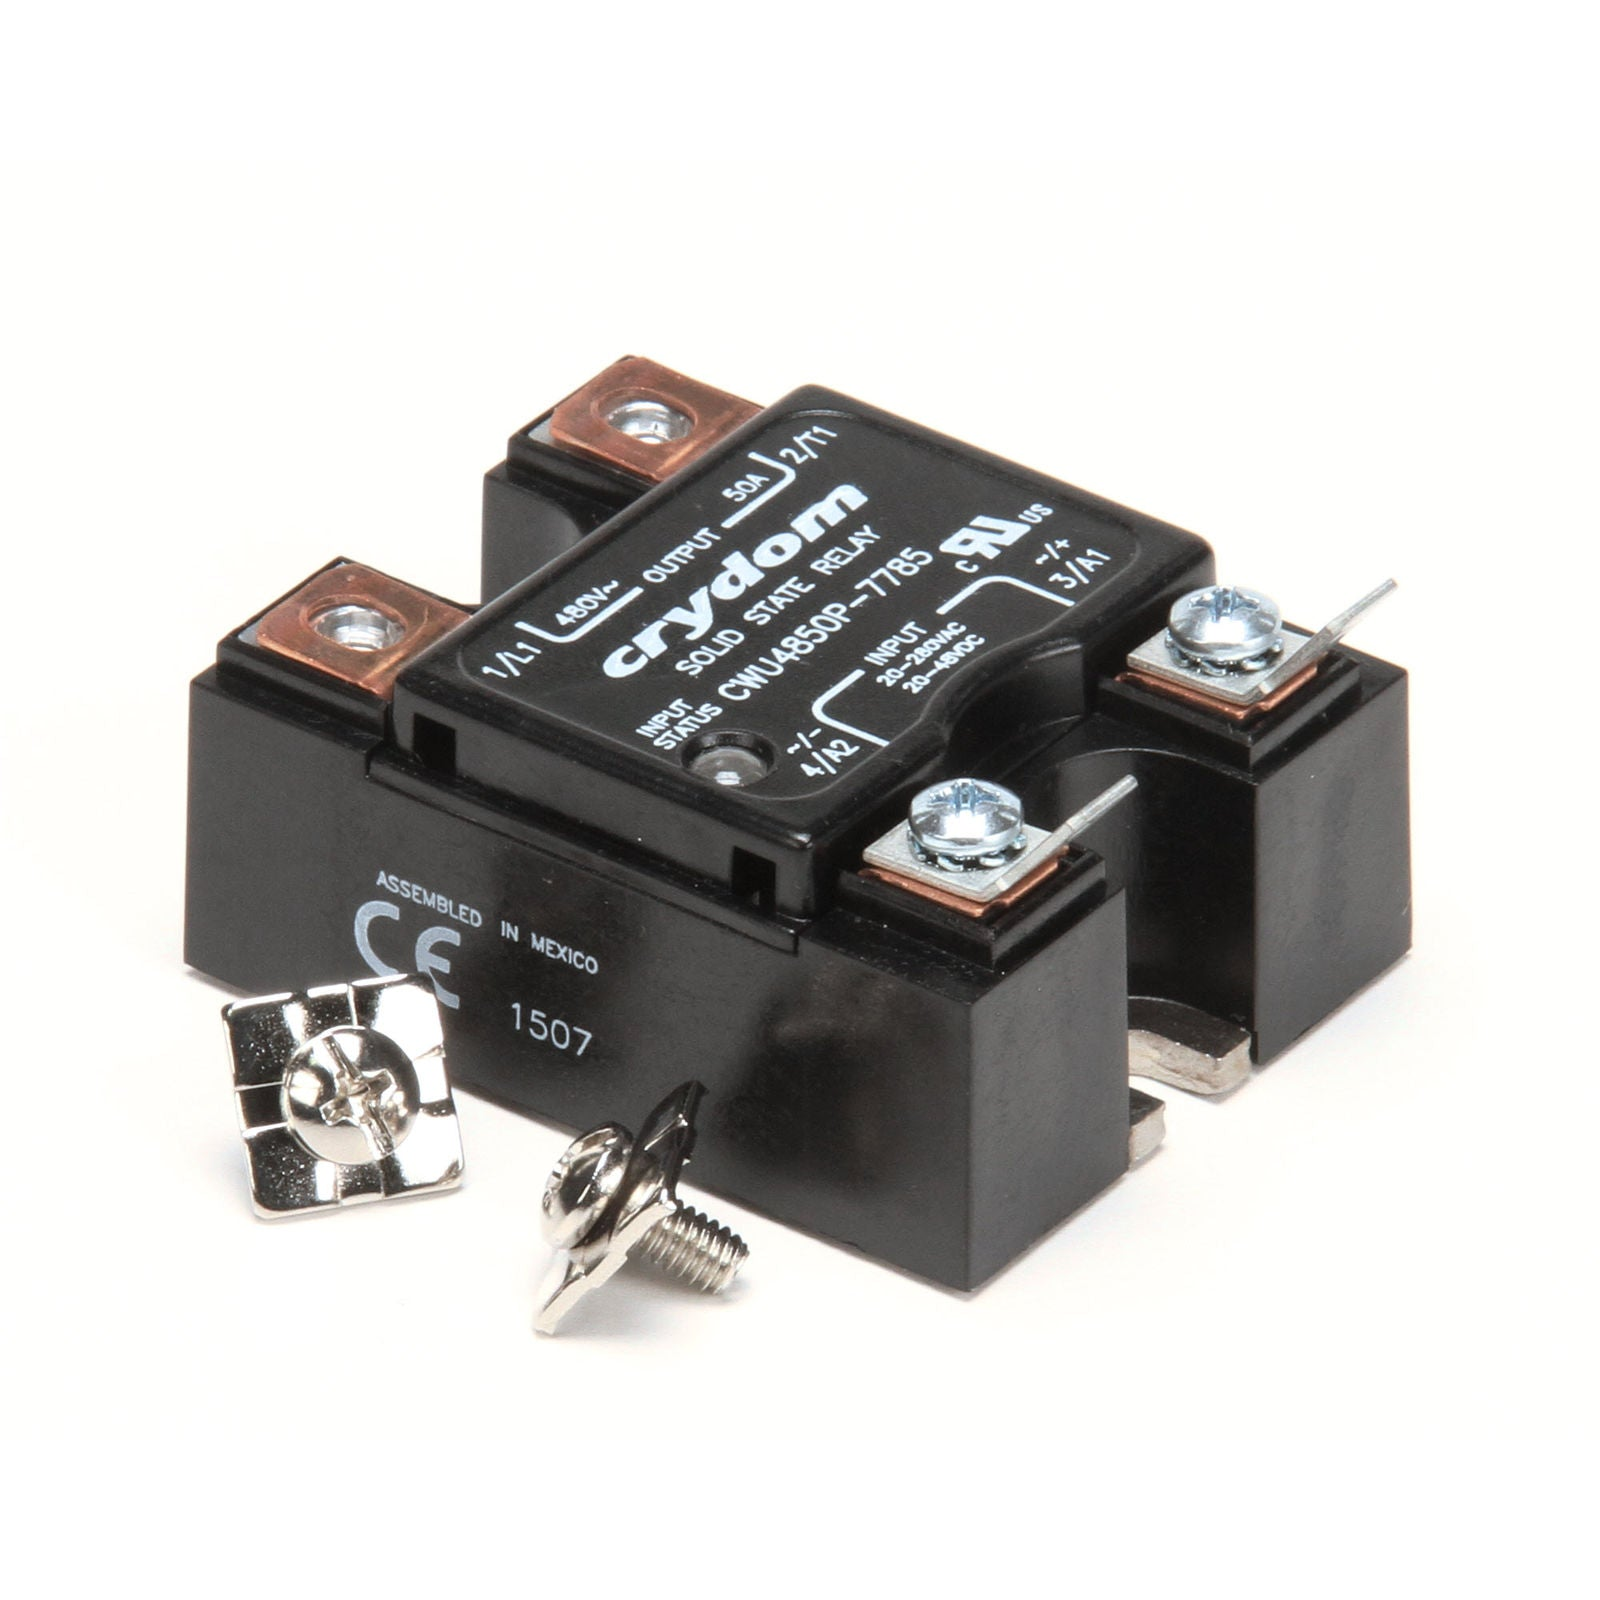 Fetco Solid State Relay 50A/480V (1052.00033.00) - Coffee Addicts Canada